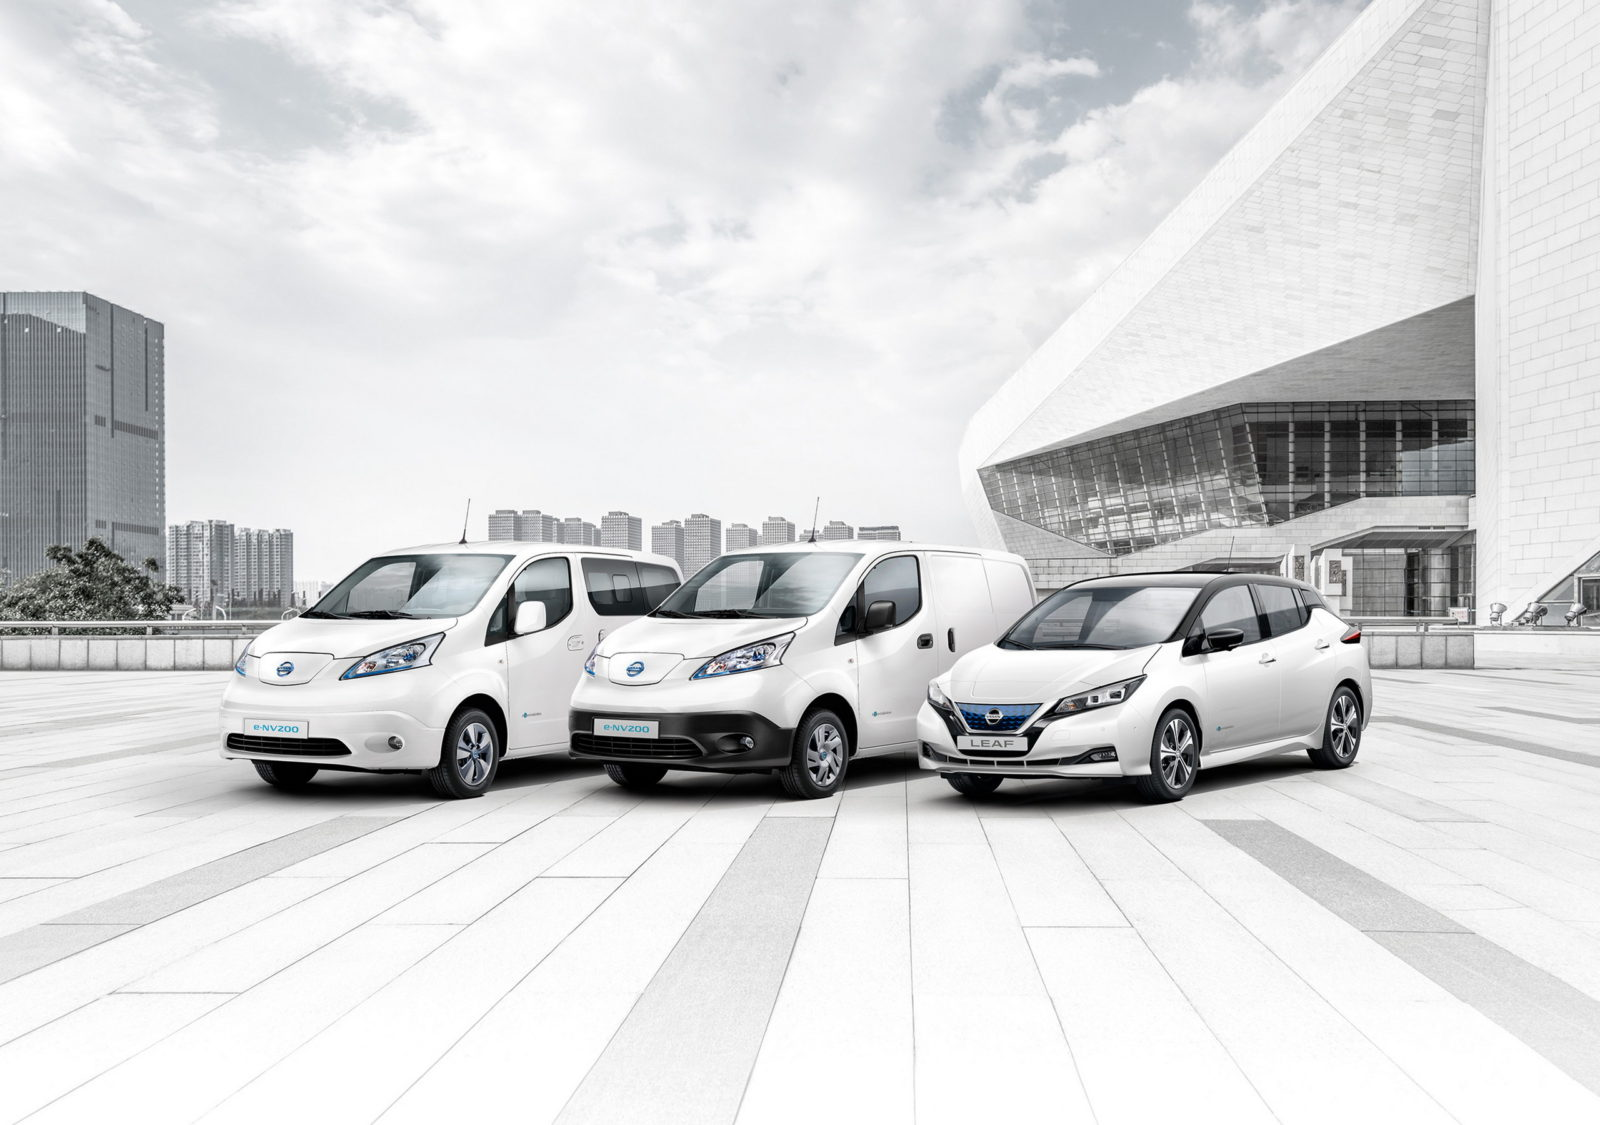 nissan-hits-a-quarter-of-a-million-ev-sales-across-europe,-iconic-leaf-at-the-top